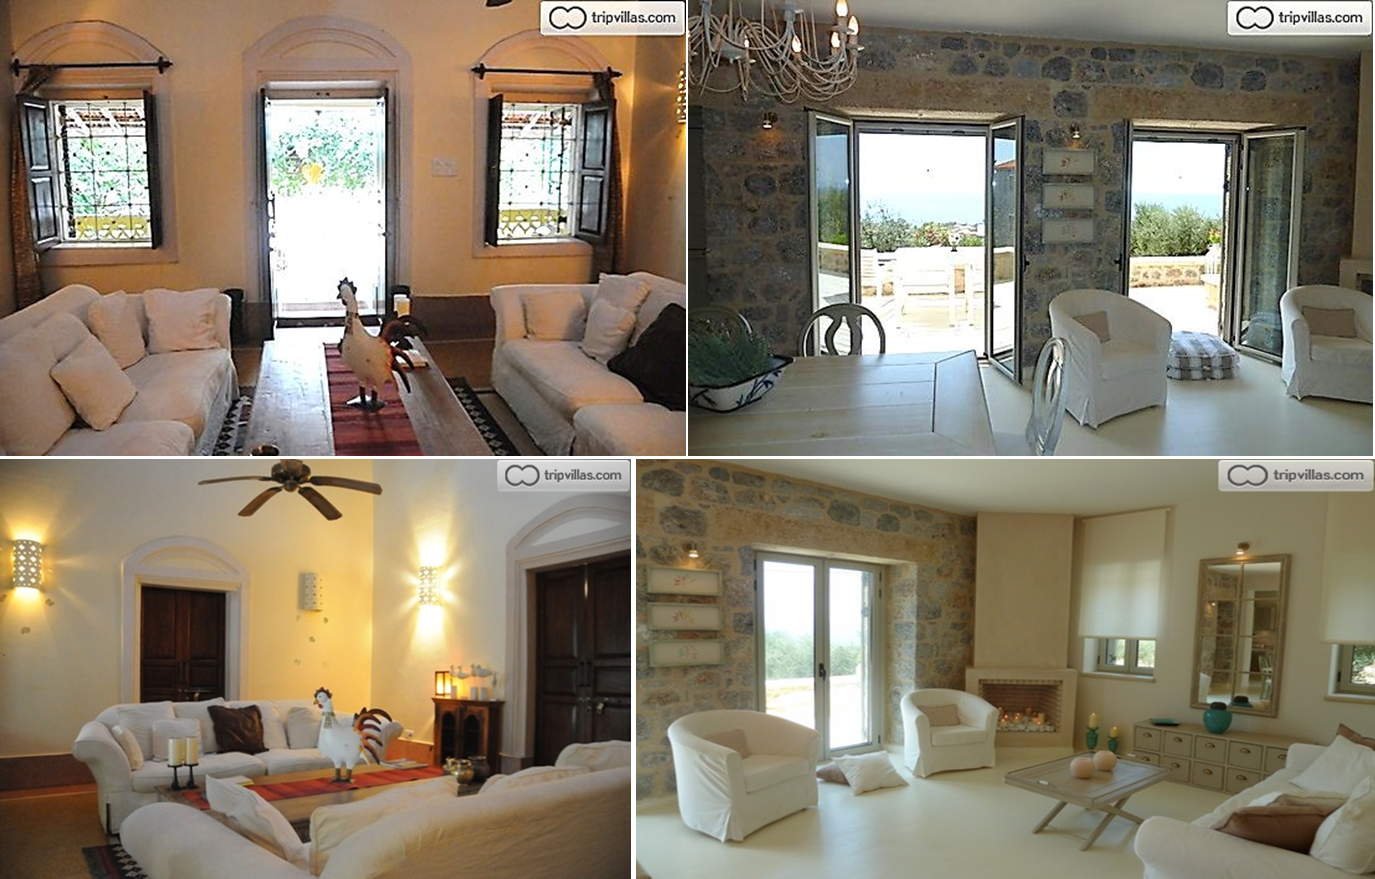 styles of interiors - mediterranean - holiday home times